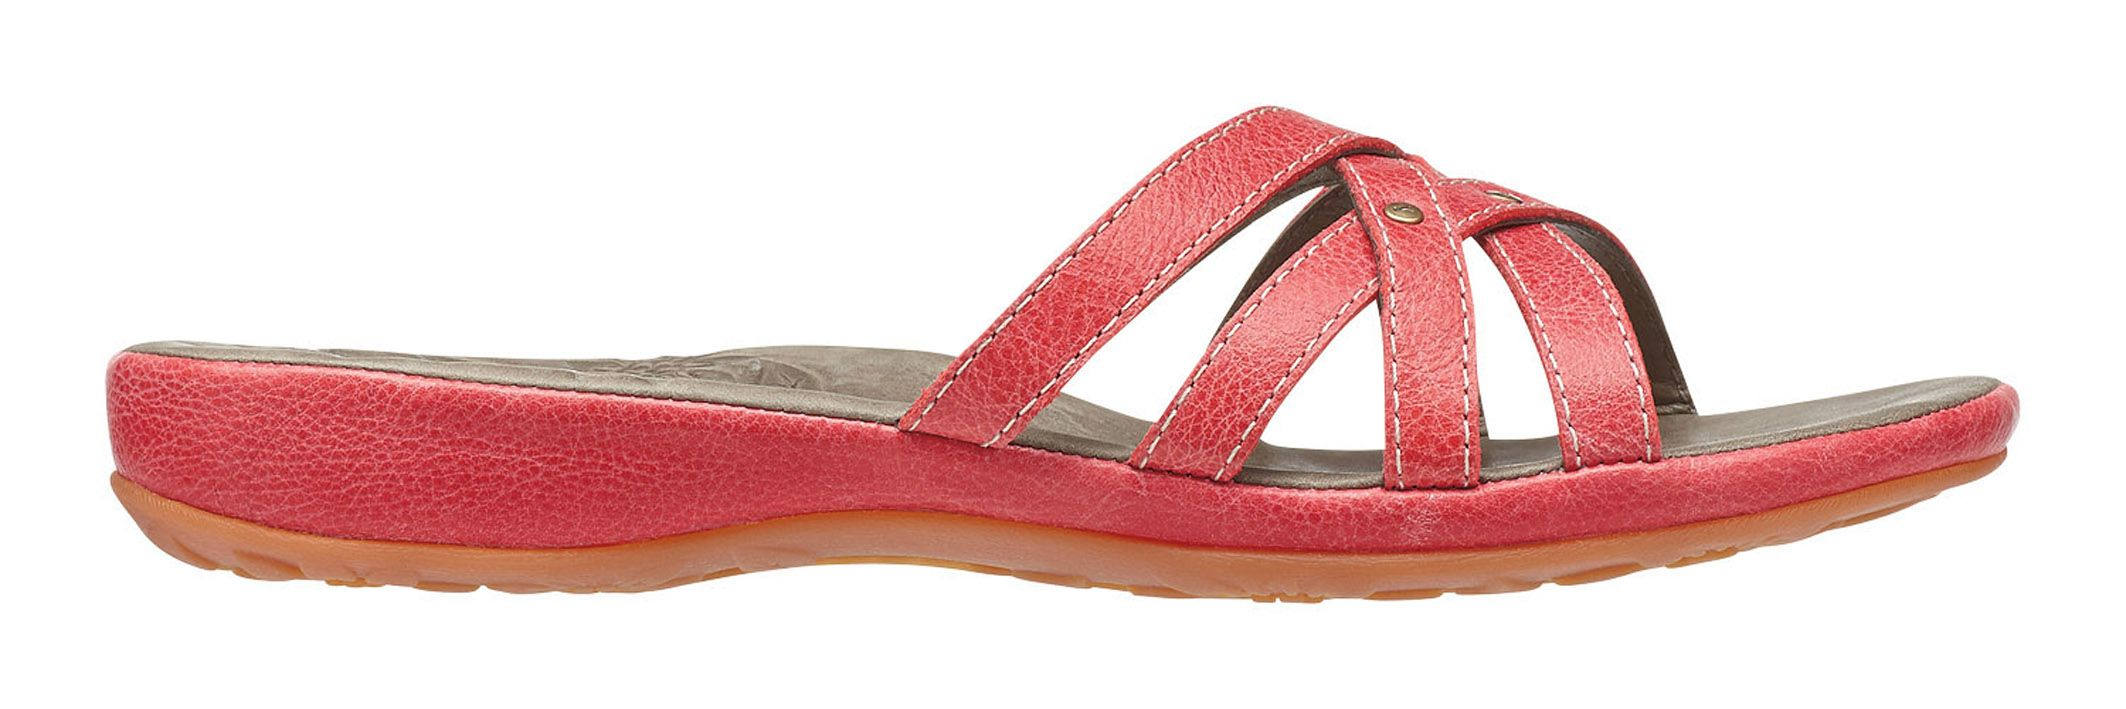 Keen City Of Palms Slide Ribbon Red-30